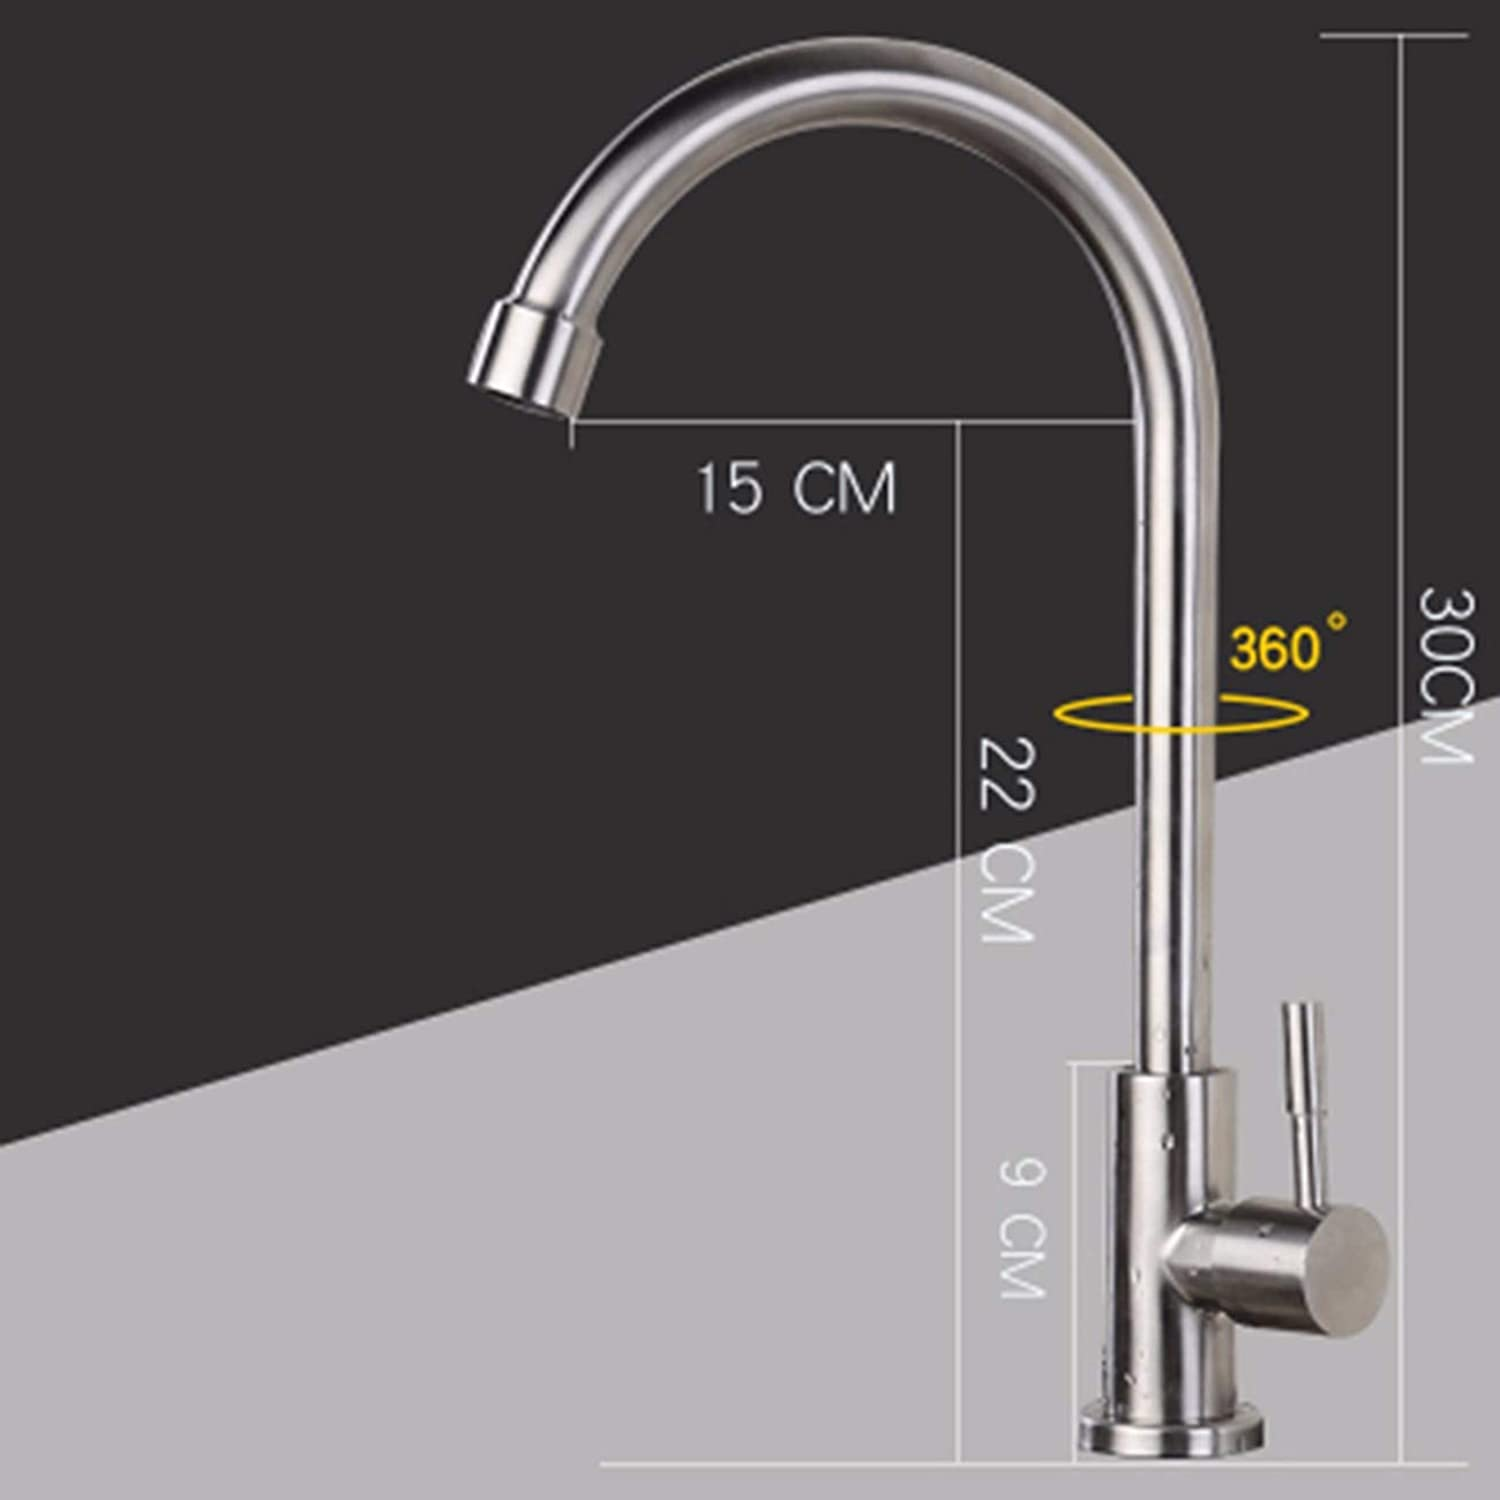 Kitchen tap All Copper Hot And Cold Household Kitchen Faucets, Vegetable Basin, redary Sink, Washbasin, Water Mixing Valve Halter,B